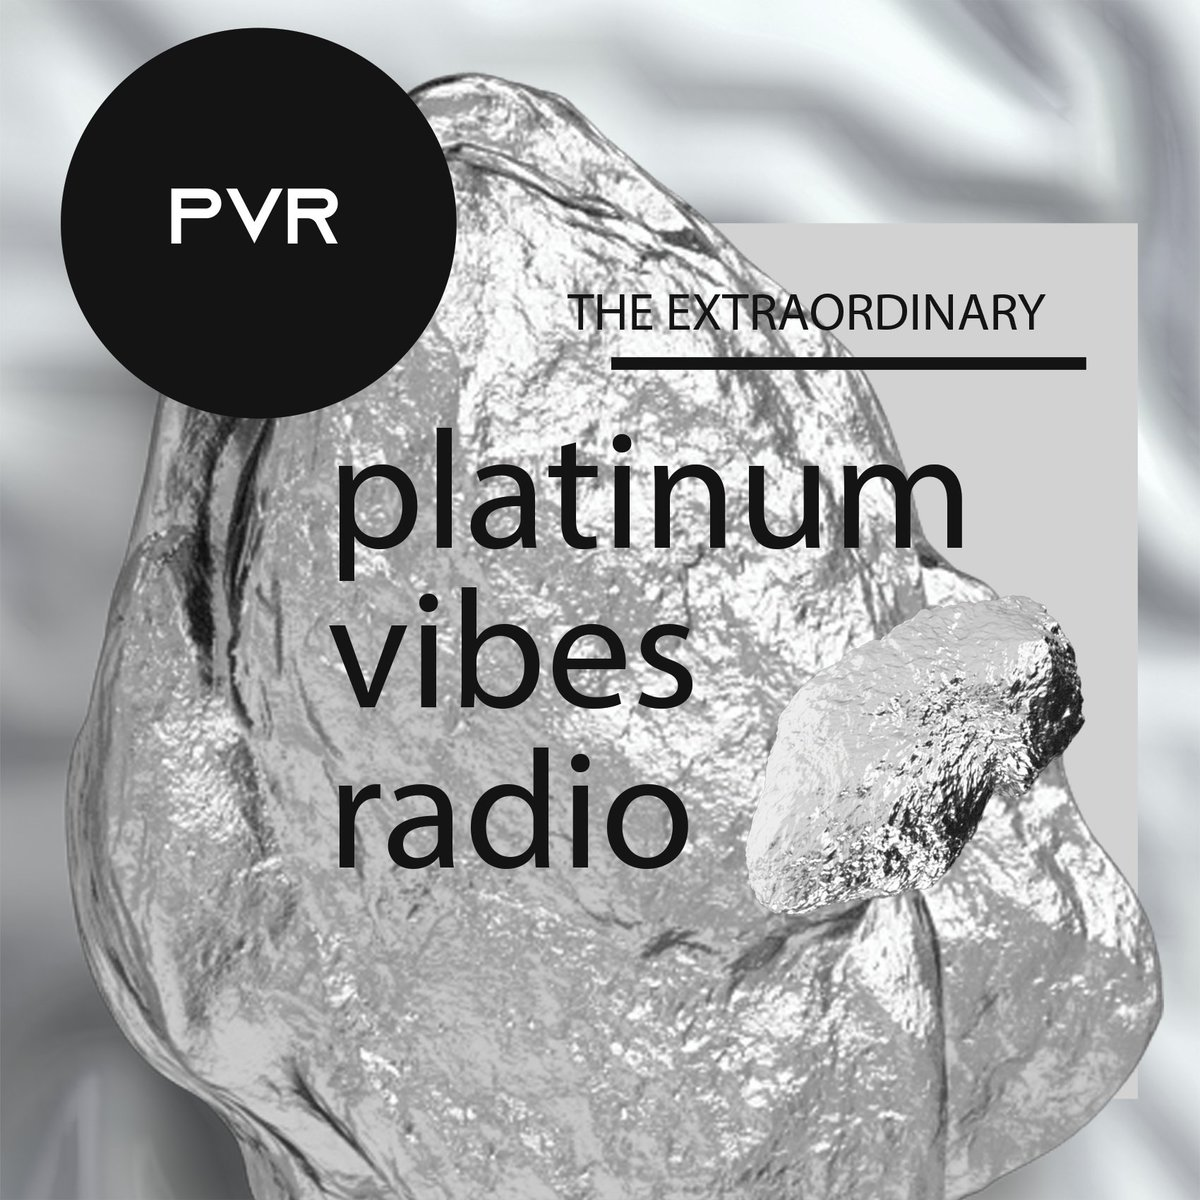 Platinum Vibes Radio is your premiere resource for the most eclectic mix of music on the web. Platinum Vibes brings you a wealth of music programs across a multitude of genres...quality programming and a vibe for the masses. THE EXTRAORDINARY happens here! #internetradio #vibespic.twitter.com/okmUcexE39